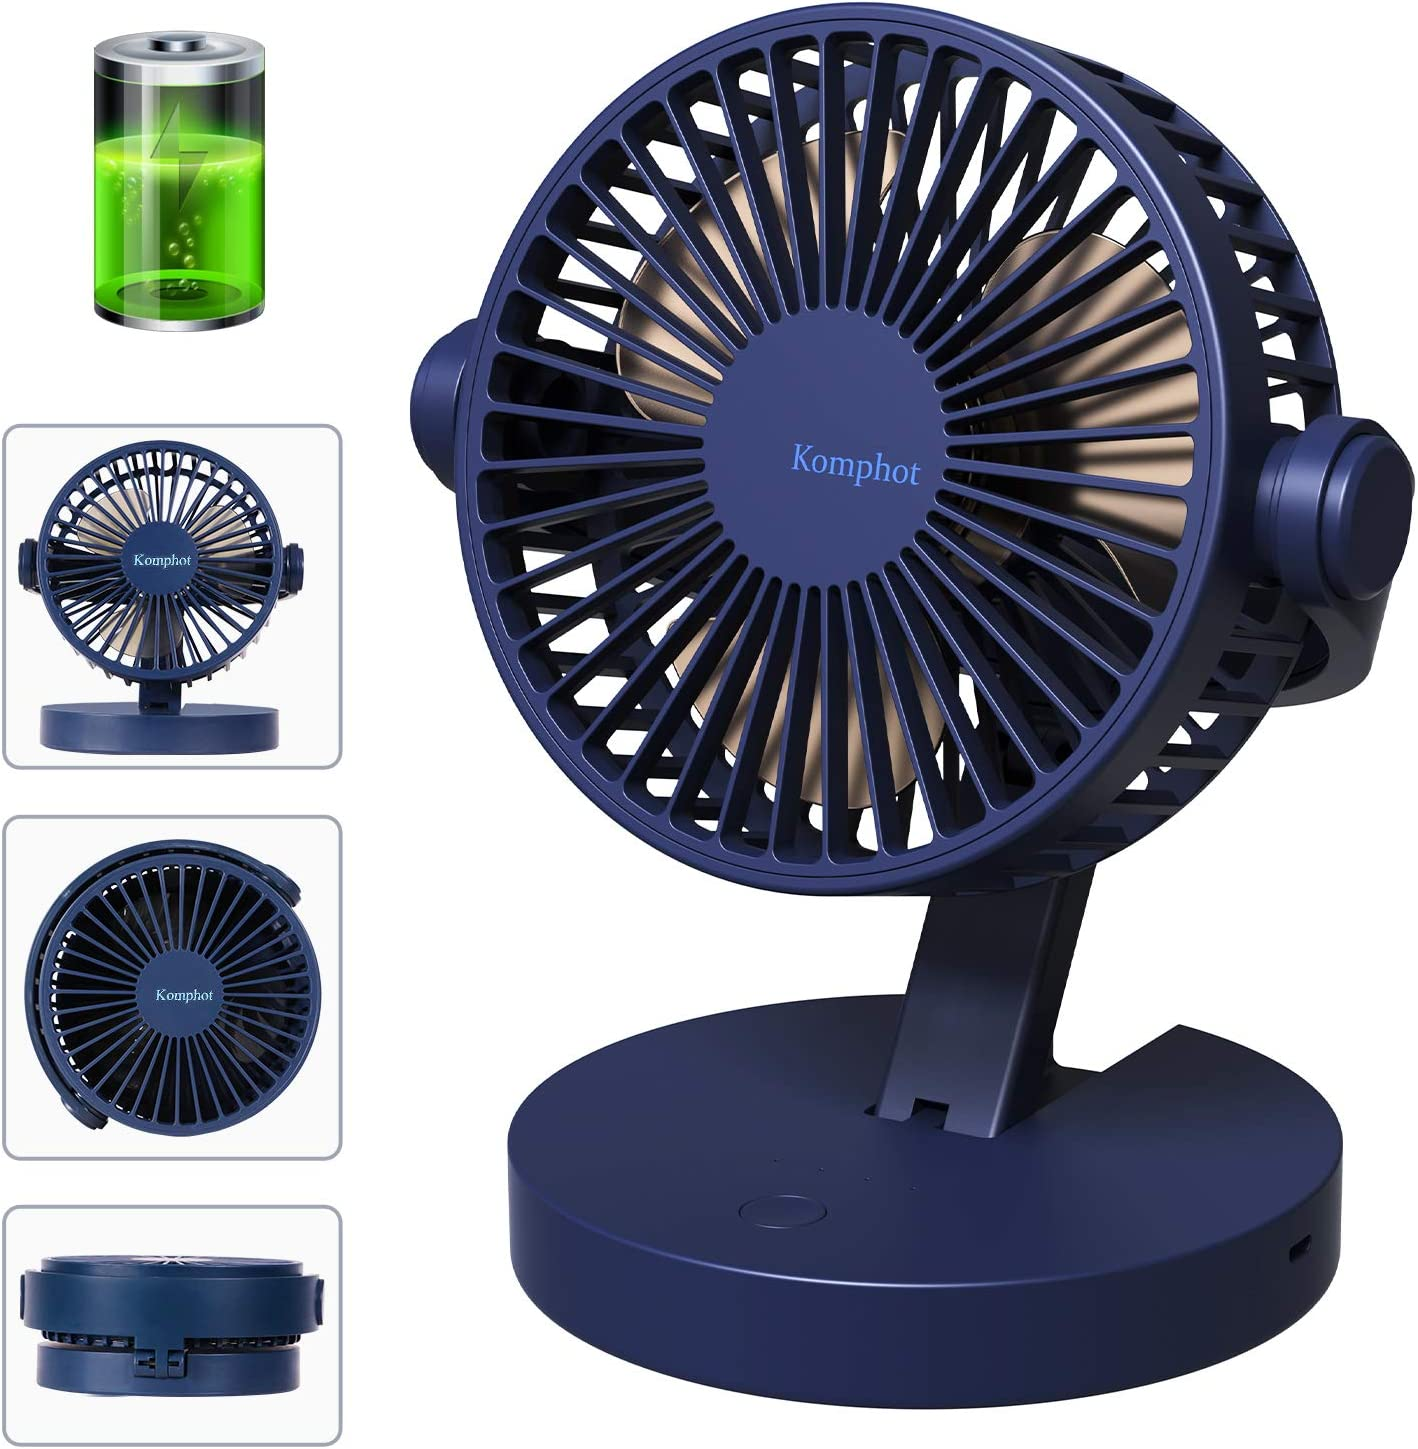 Komphot Rechargeable Battery Operated Fan Portable Small Quiet USB Desktop Fan with Fold Strong Airflow 3 Speeds Personal Tabletop Fan Powered by USB for Office Home Travel Camping School (BLUE)